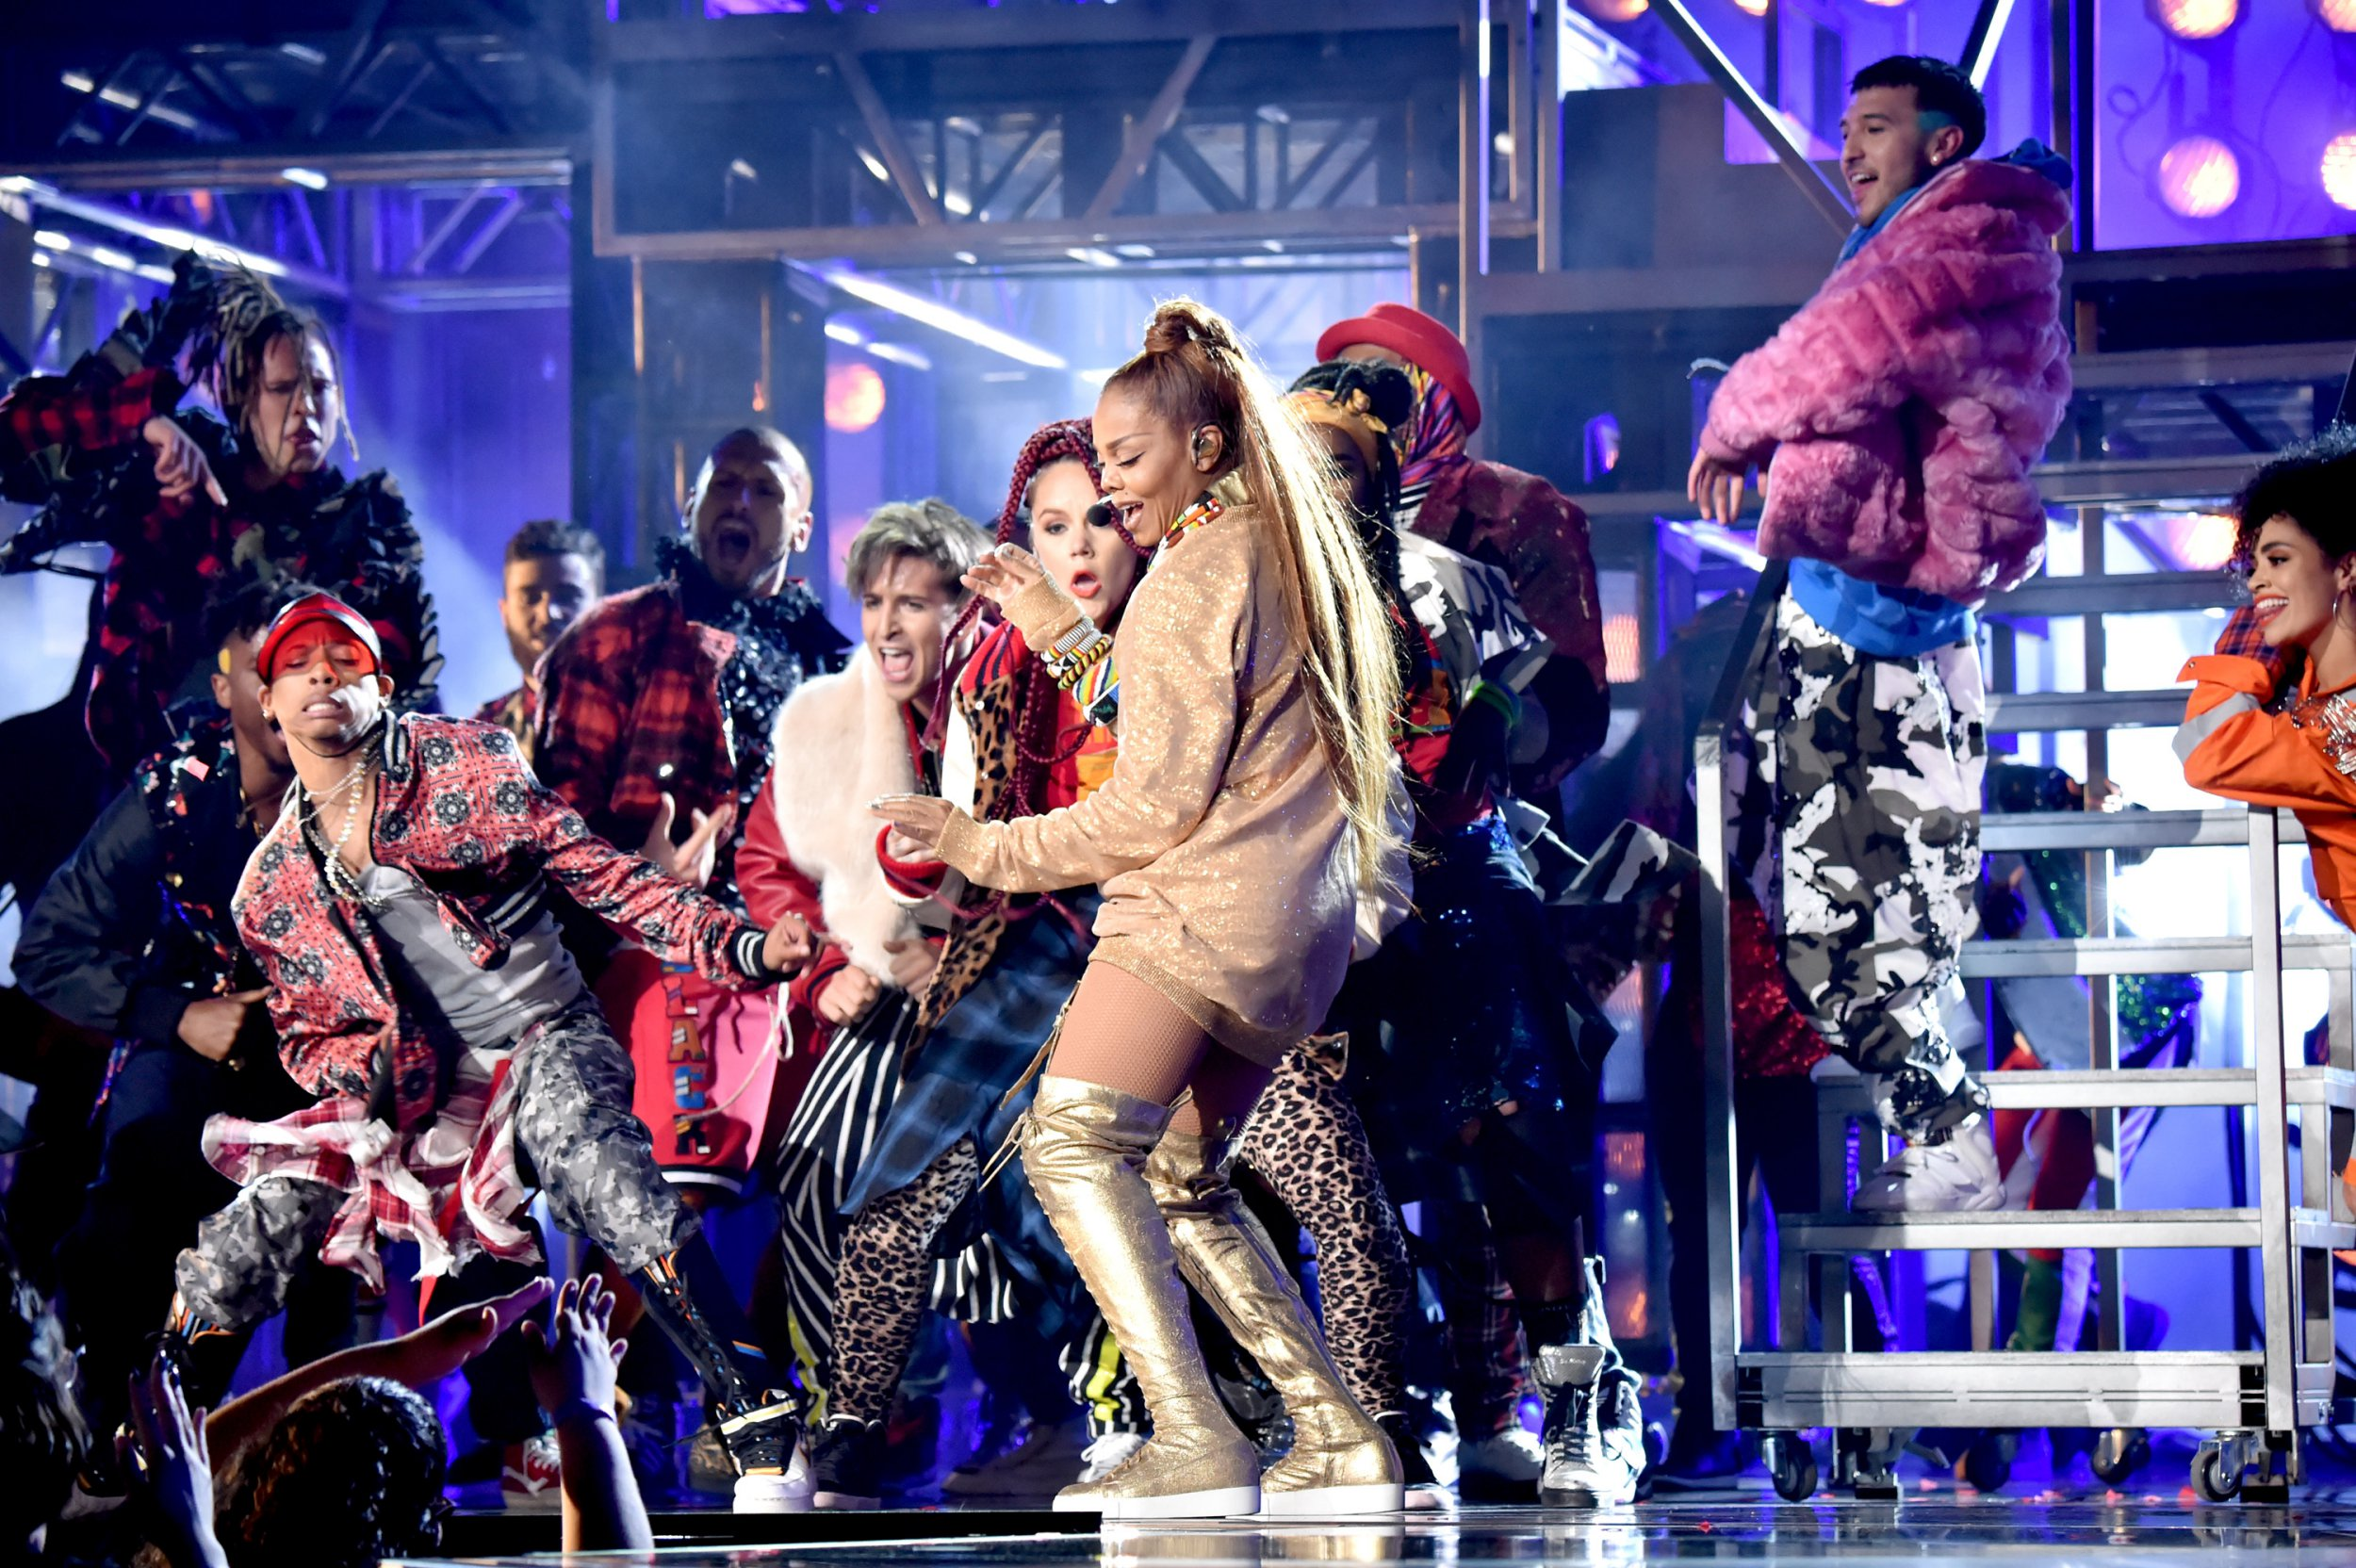 LAS VEGAS, NV - MAY 20: Recording artist Janet Jackson performs onstage at the 2018 Billboard Music Awards at MGM Grand Garden Arena on May 20, 2018 in Las Vegas, Nevada. (Photo by Kevin Mazur/WireImage)